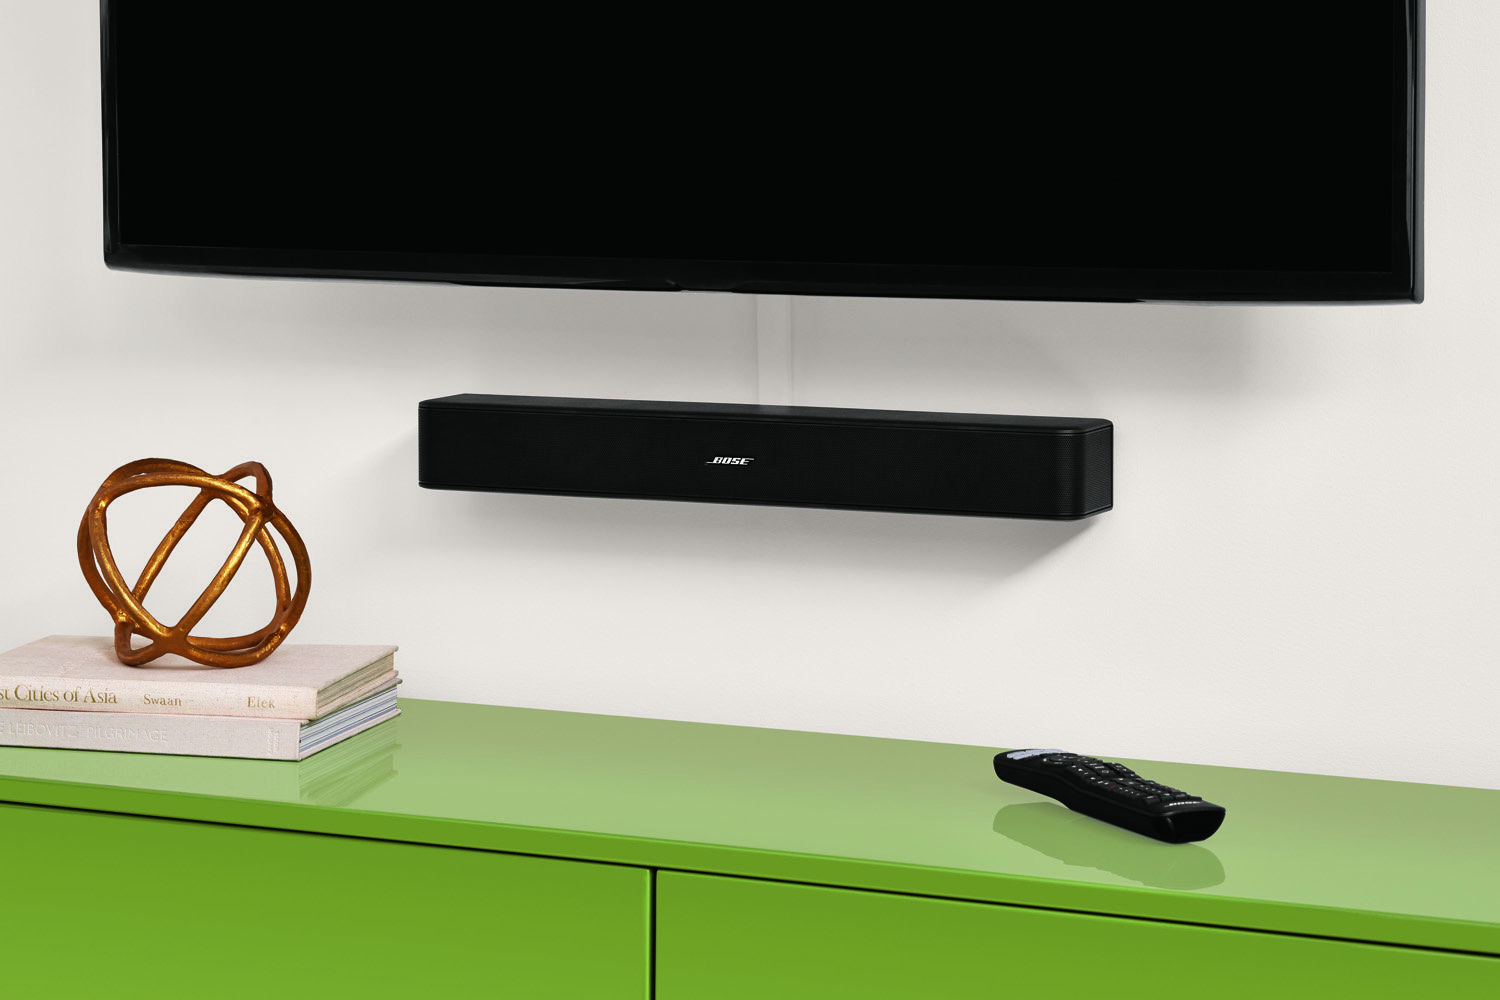 soundbar che cos e a che cosa serve cose di casa. Black Bedroom Furniture Sets. Home Design Ideas